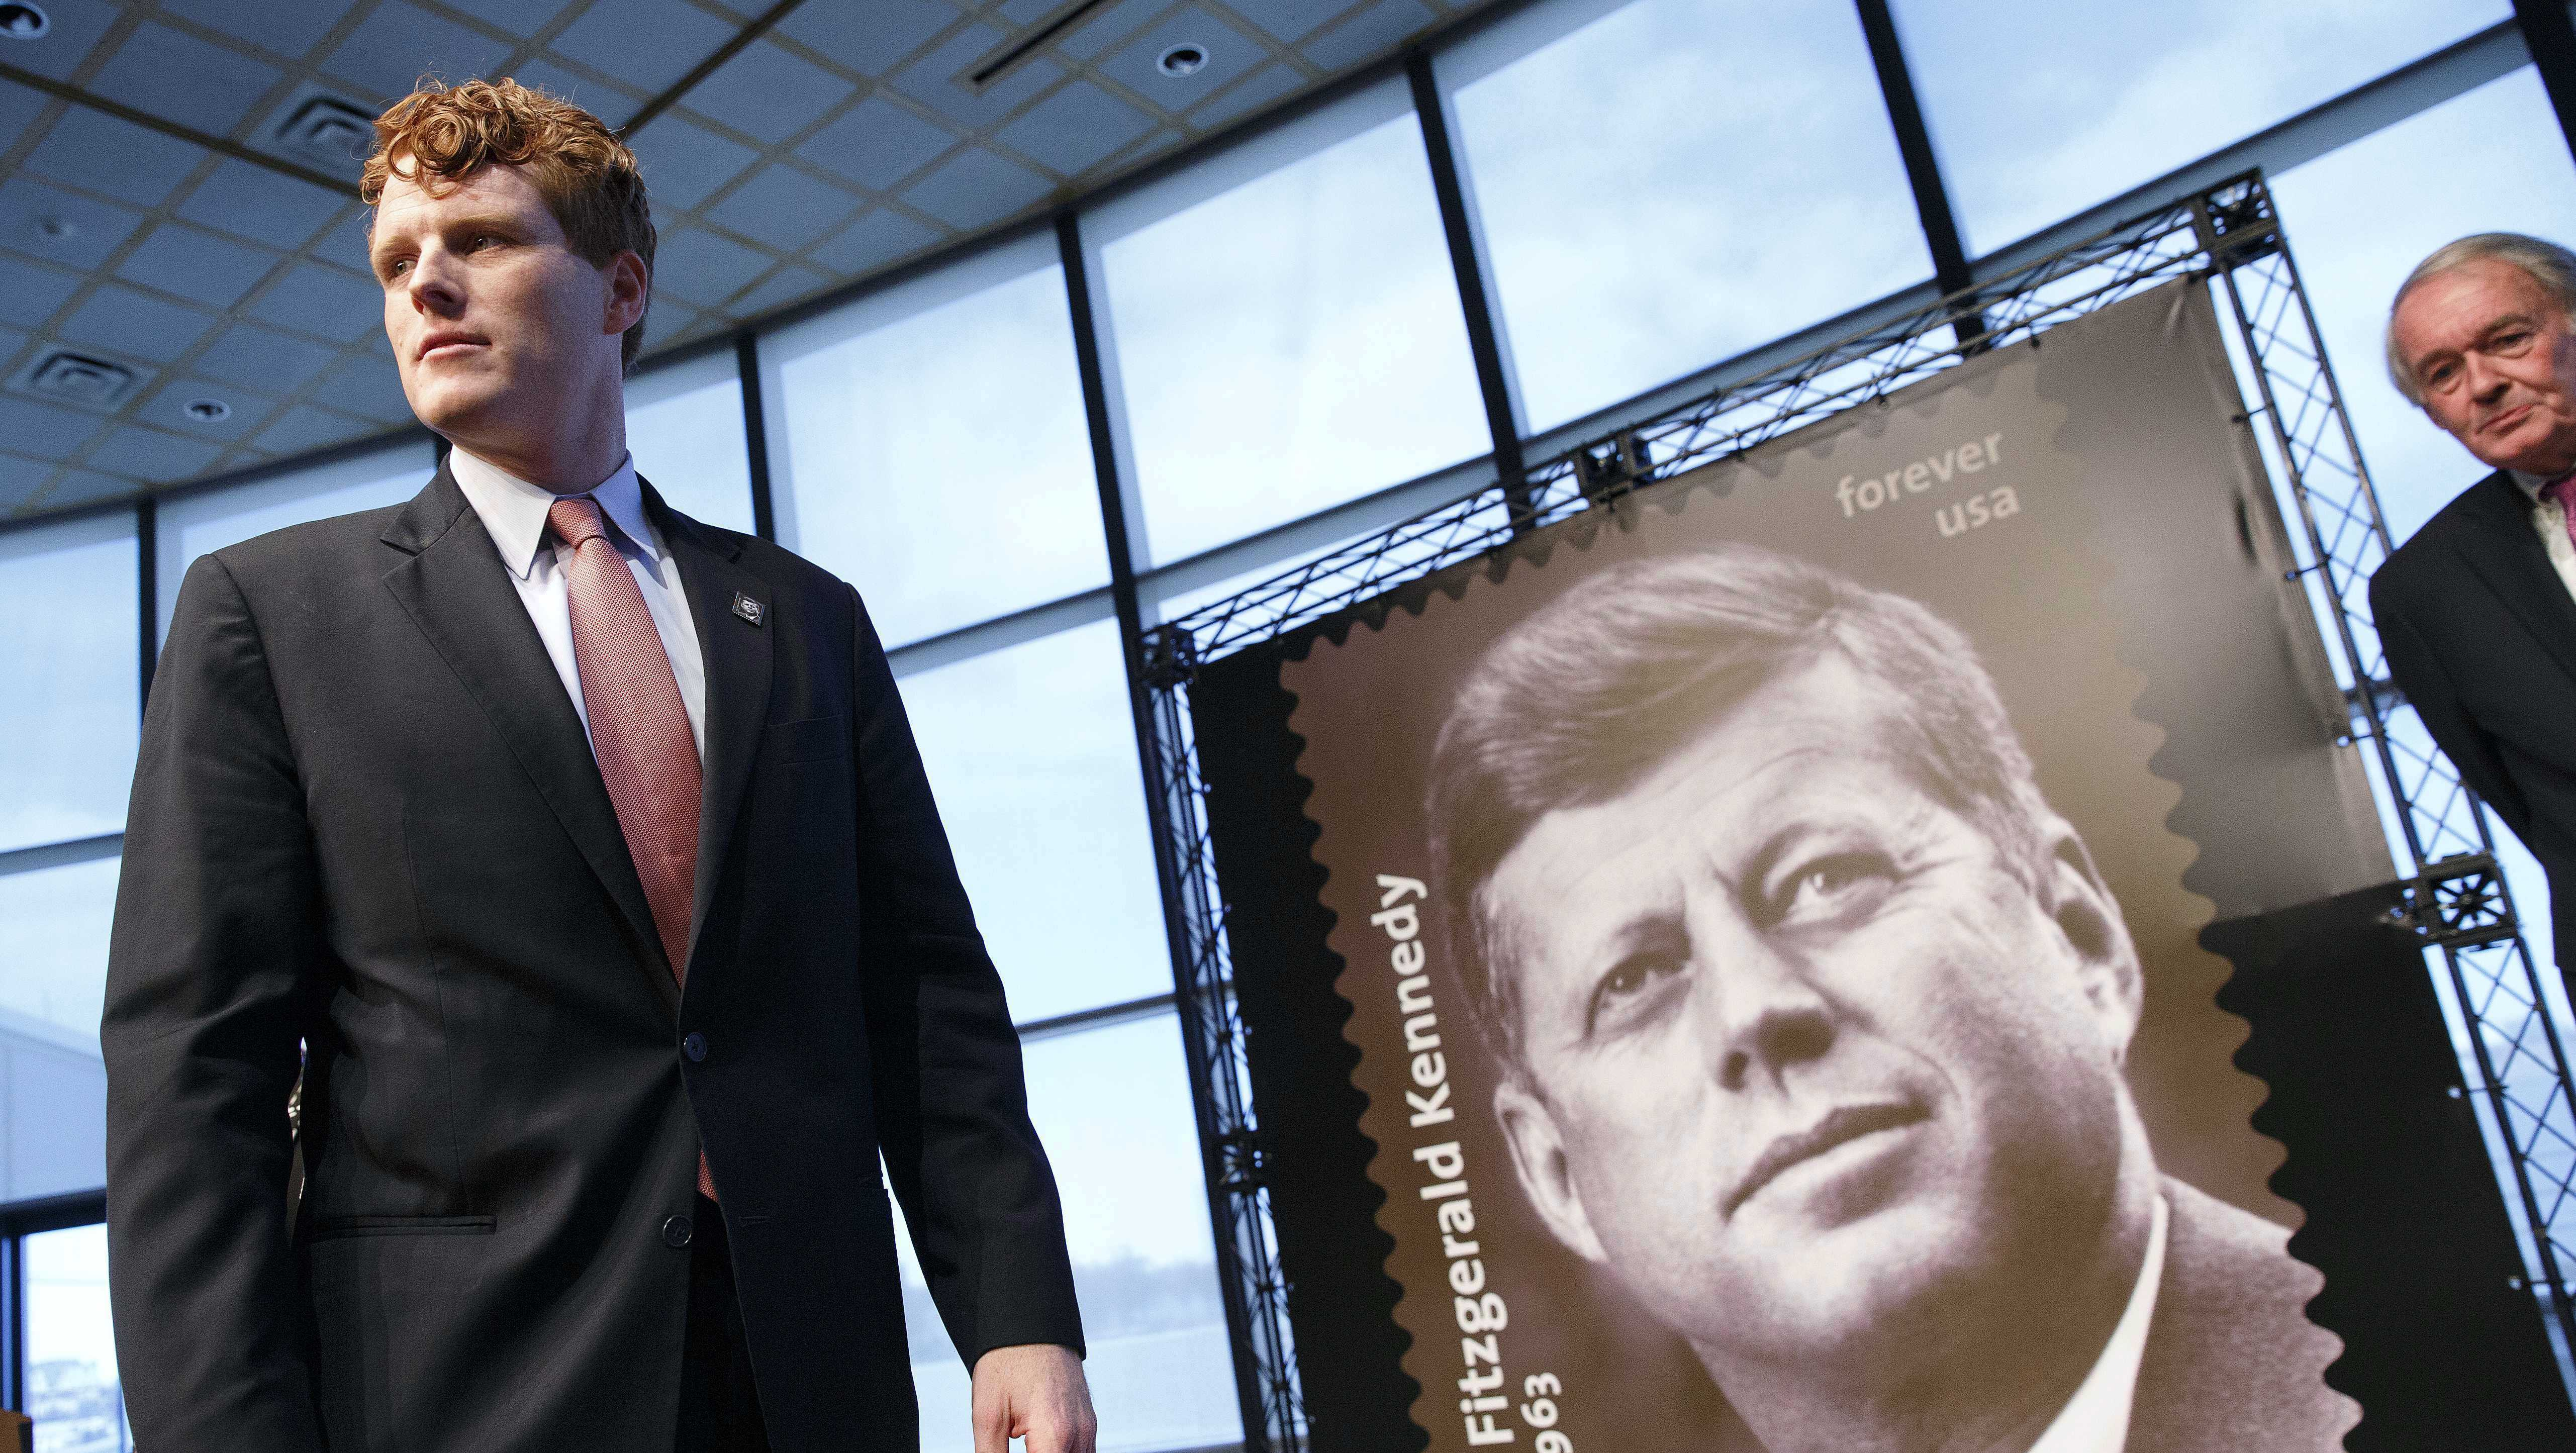 Rep. Joseph P. Kennedy III, D-Mass., left, stands beside the John F. Kennedy Centennial Stamp following dedication ceremonies for the stamp at the John F. Kennedy Library in Boston, Monday, Feb. 20, 2017.